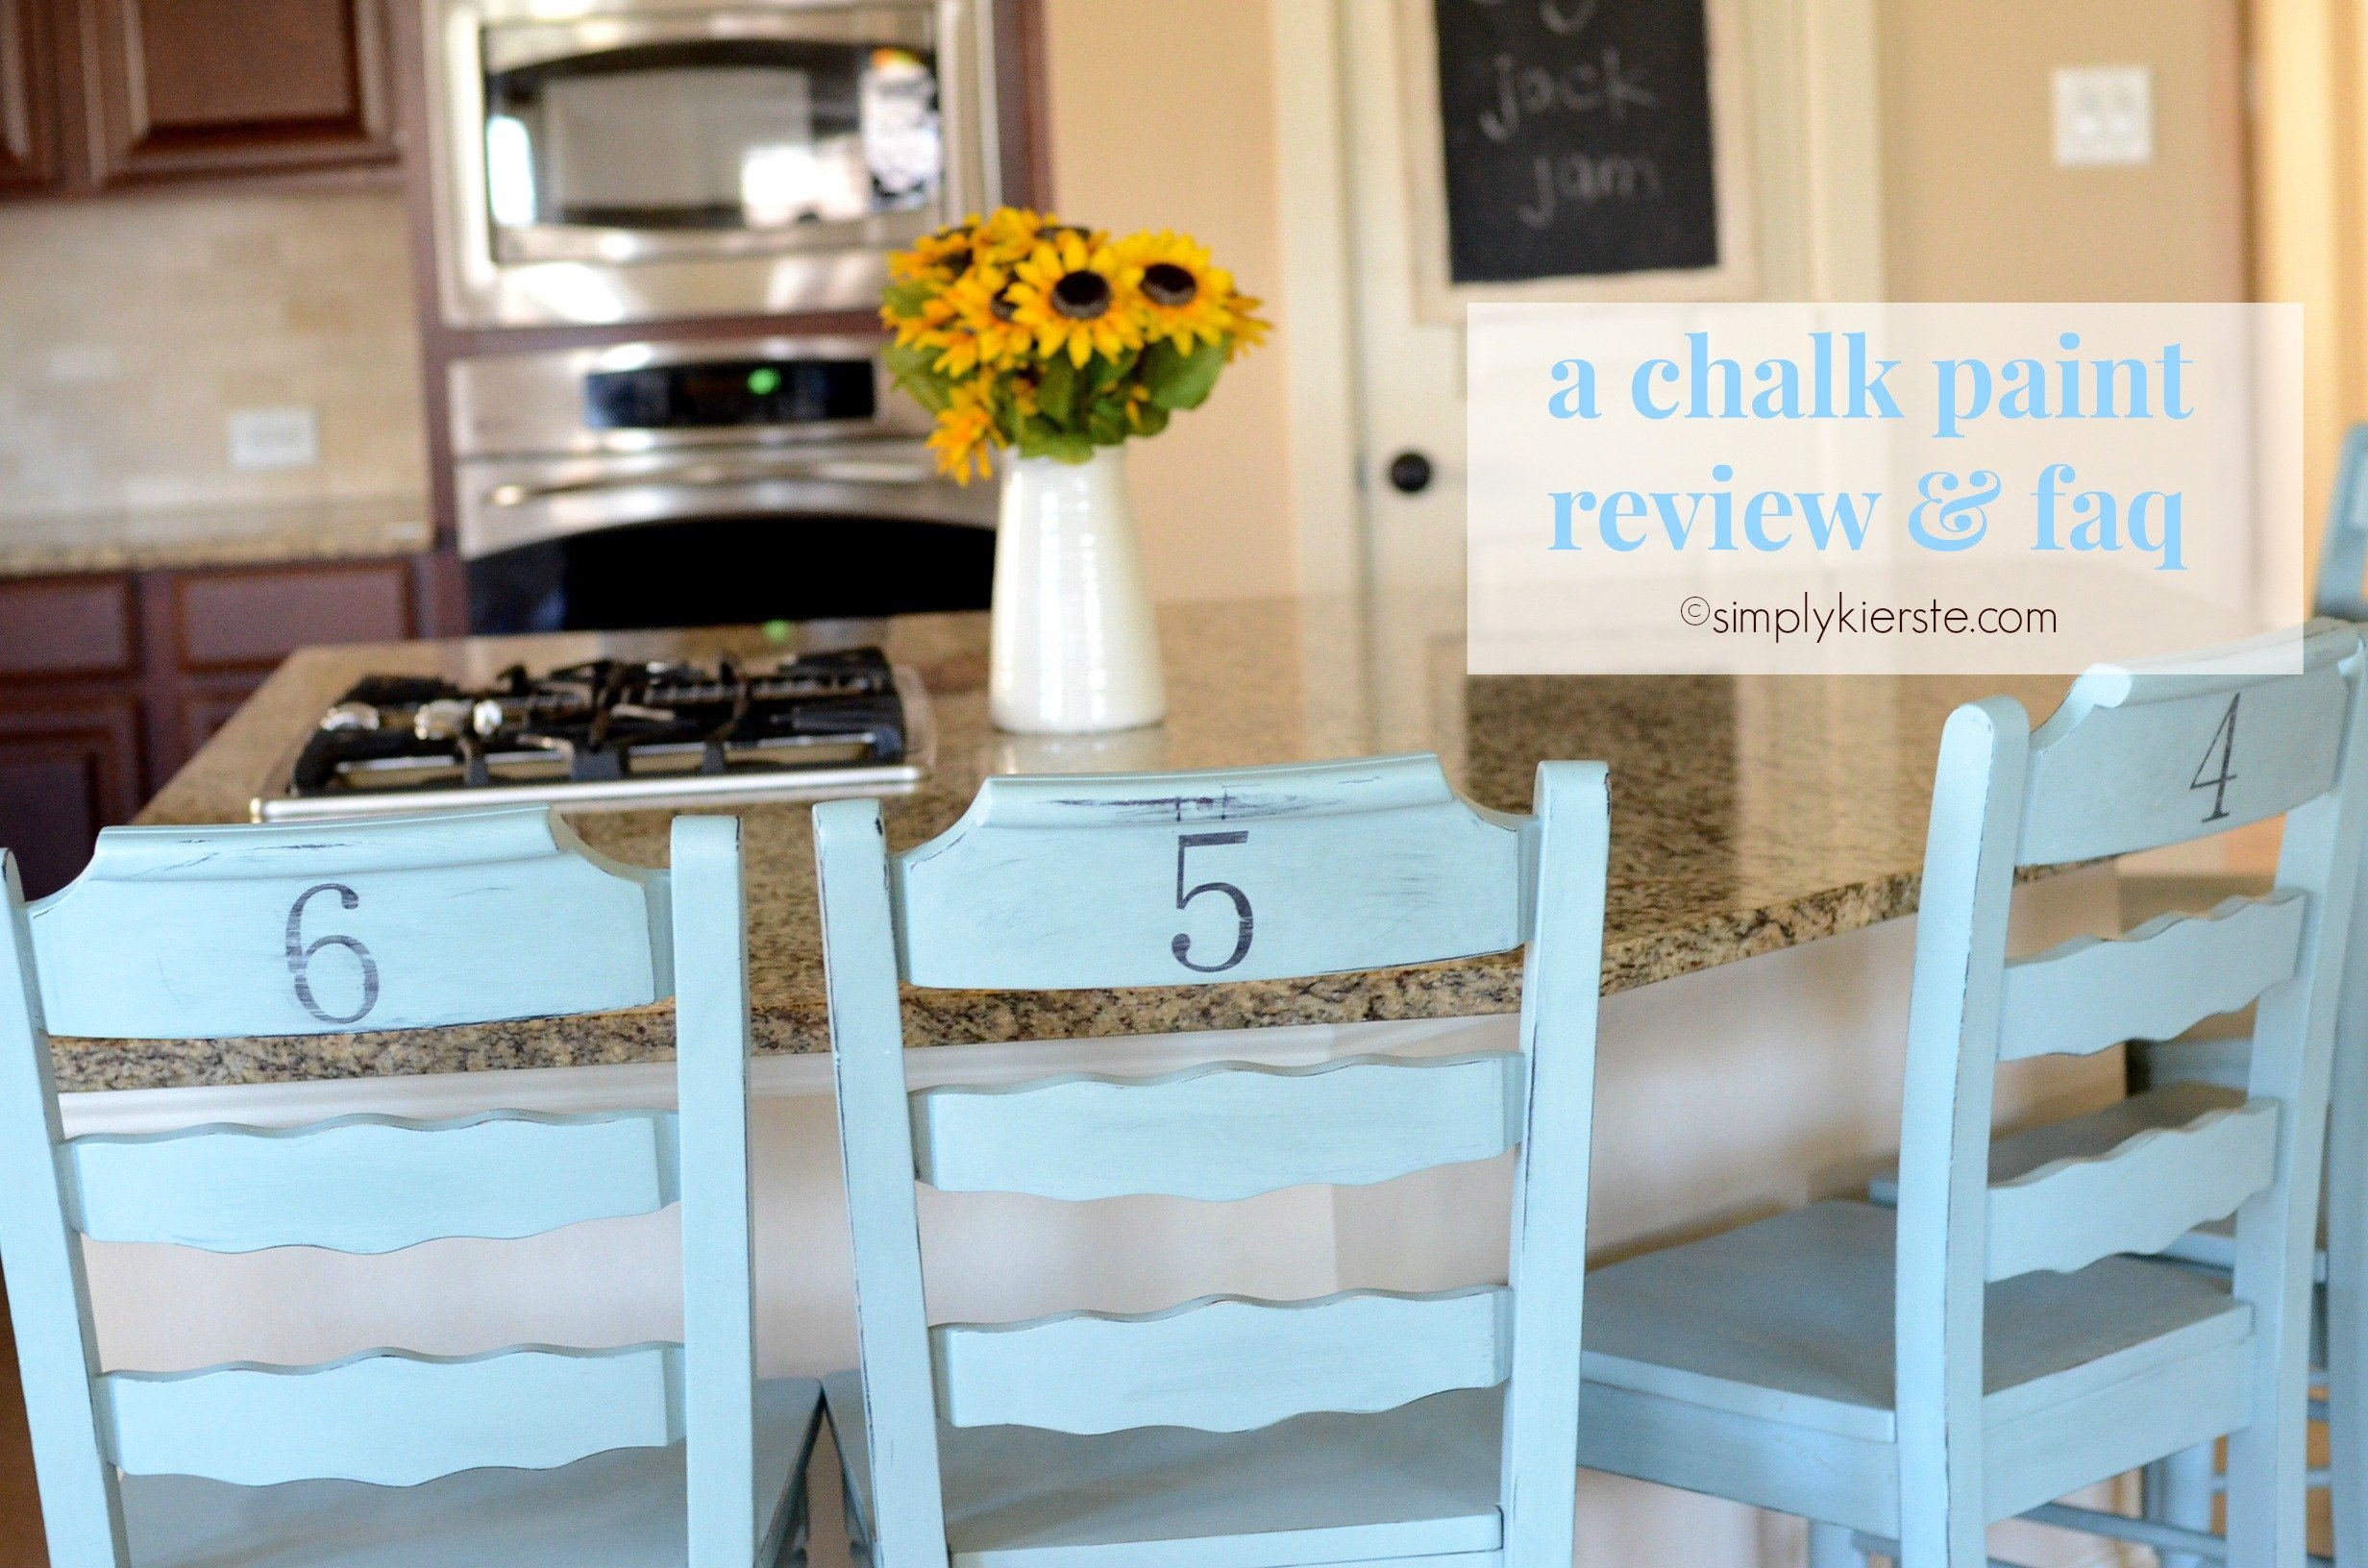 Chalk Paint Review | Simplykierste.com